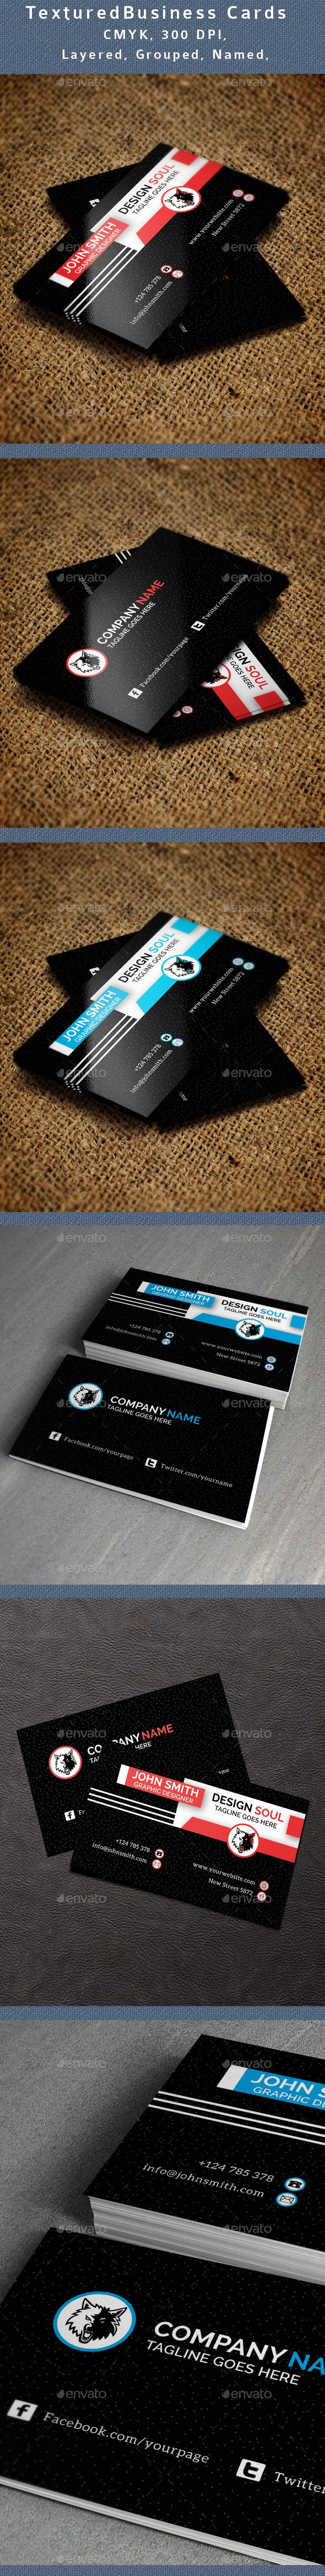 8 best business card images on Pinterest